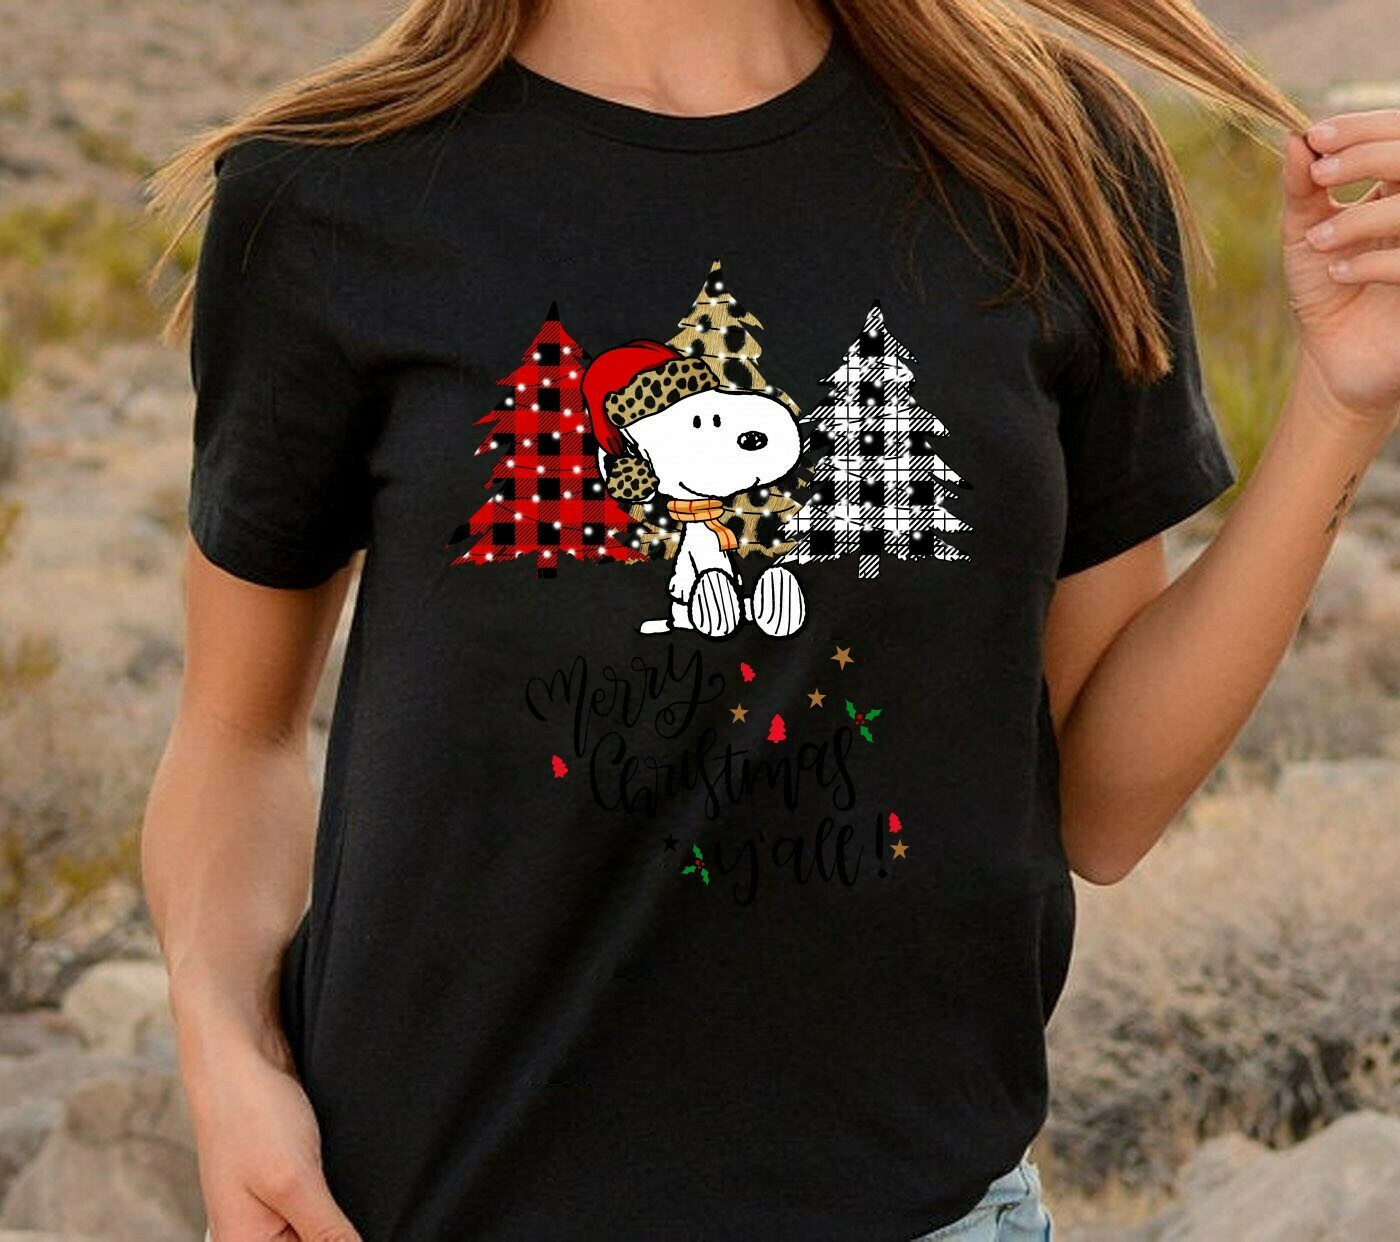 Merry Christmas y'all,Tree Snoopy Gift Xmas Ugly,Lumberjack,Buffalo Plaid,Leopard print Christmas Trees T-Shirt Long Sleeve Sweatshirt Hoodie Jolly Family Gifts